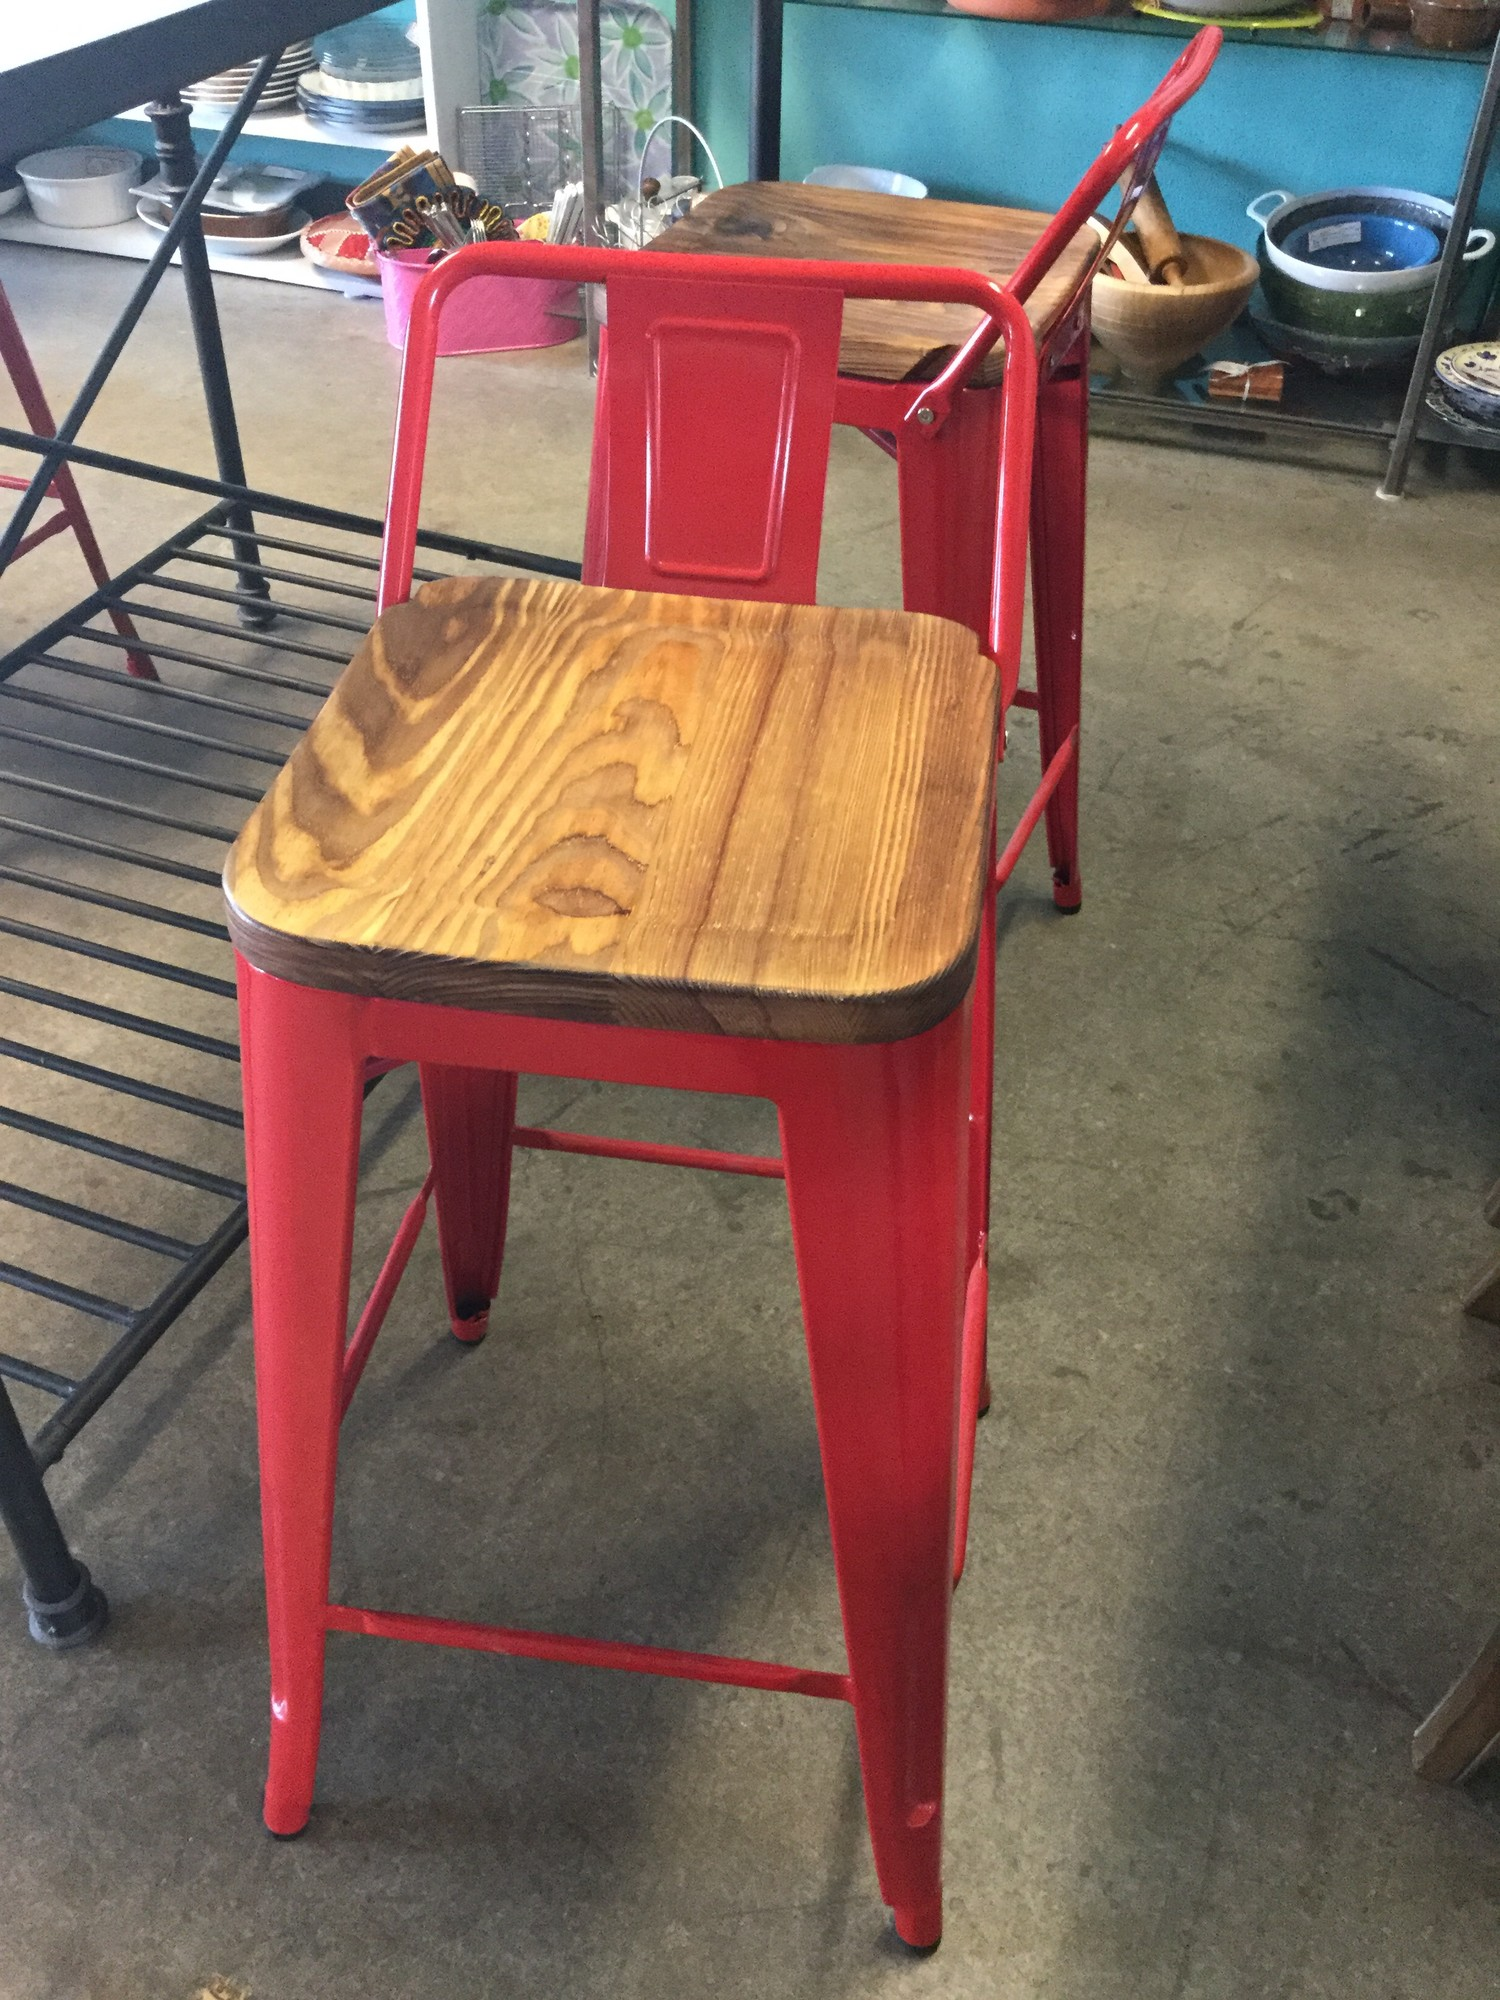 "Wood / Metal Counter Chairs, Red Metal Legs, Wood Set, Size: 26"" Set of 4"